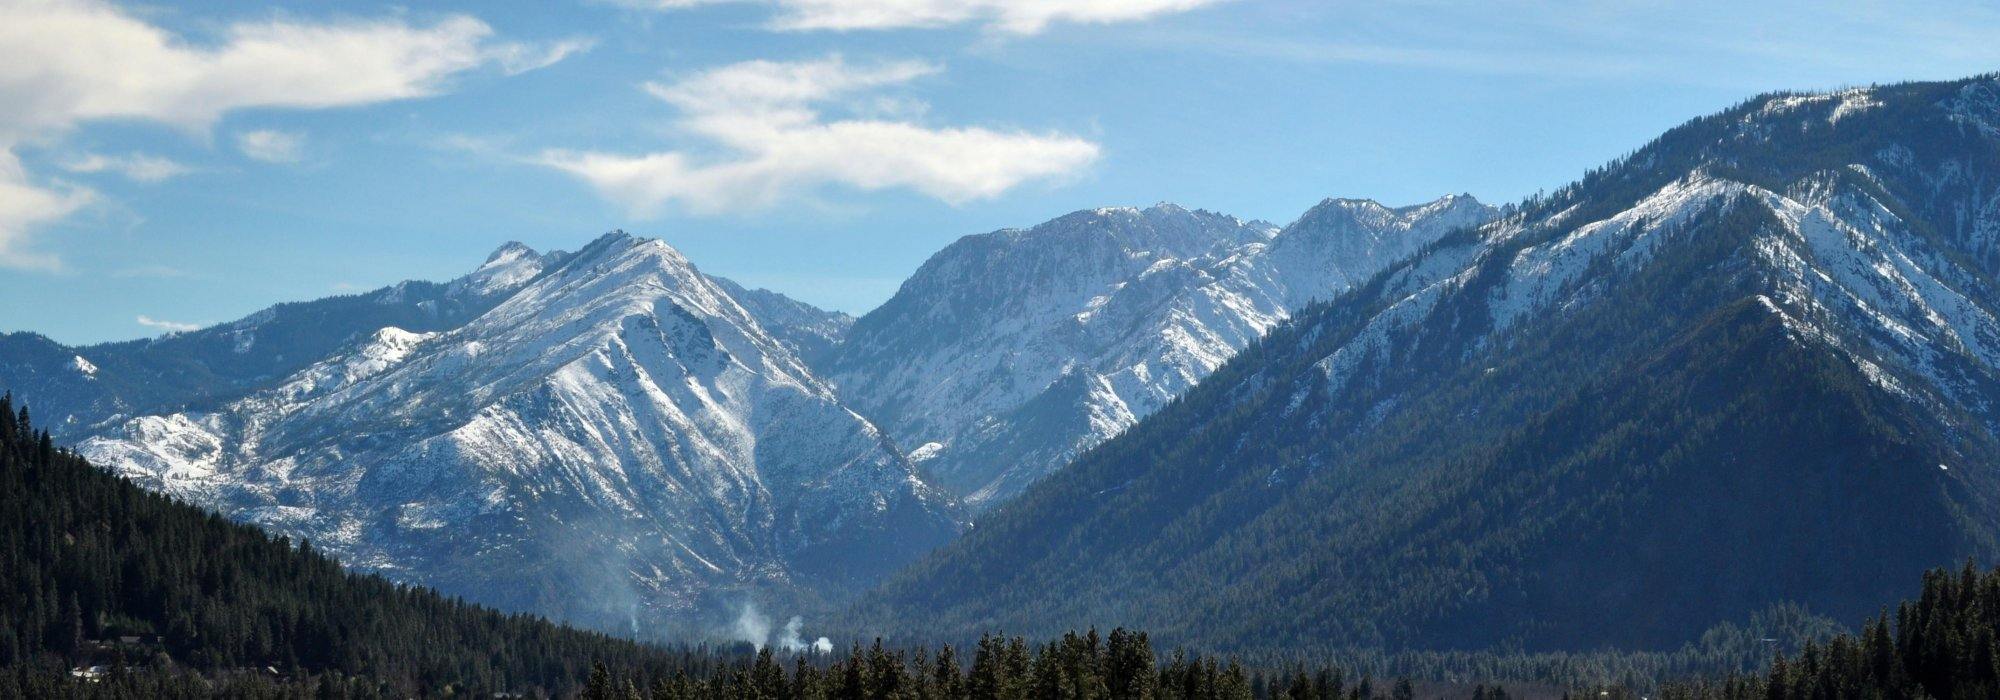 The Enchantments from North Road in Peshastin.